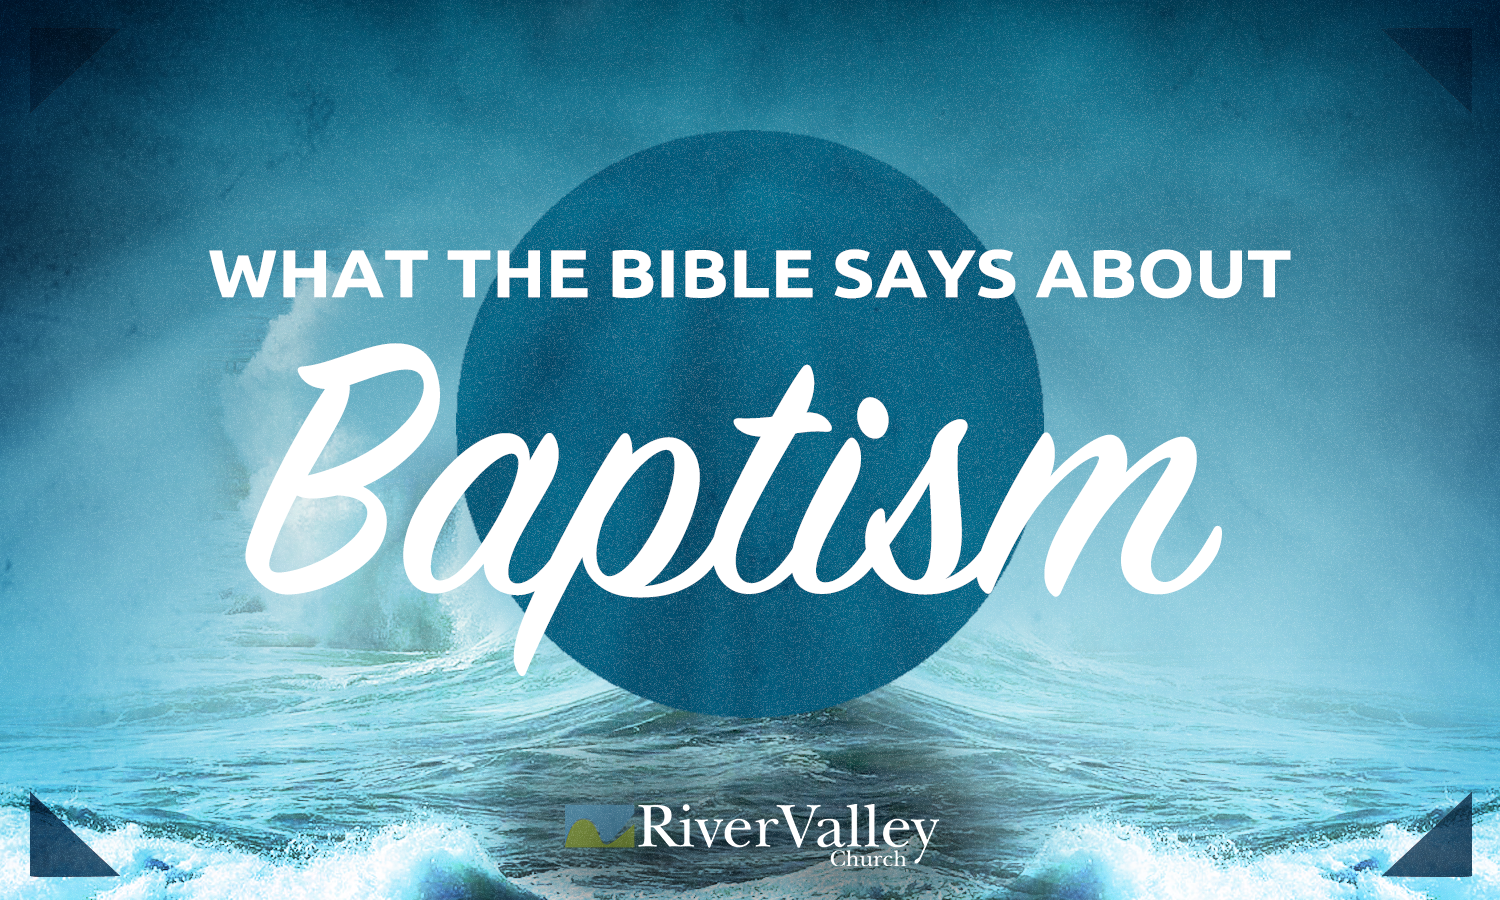 April 28, 2019 – What The Bible Says About Baptism